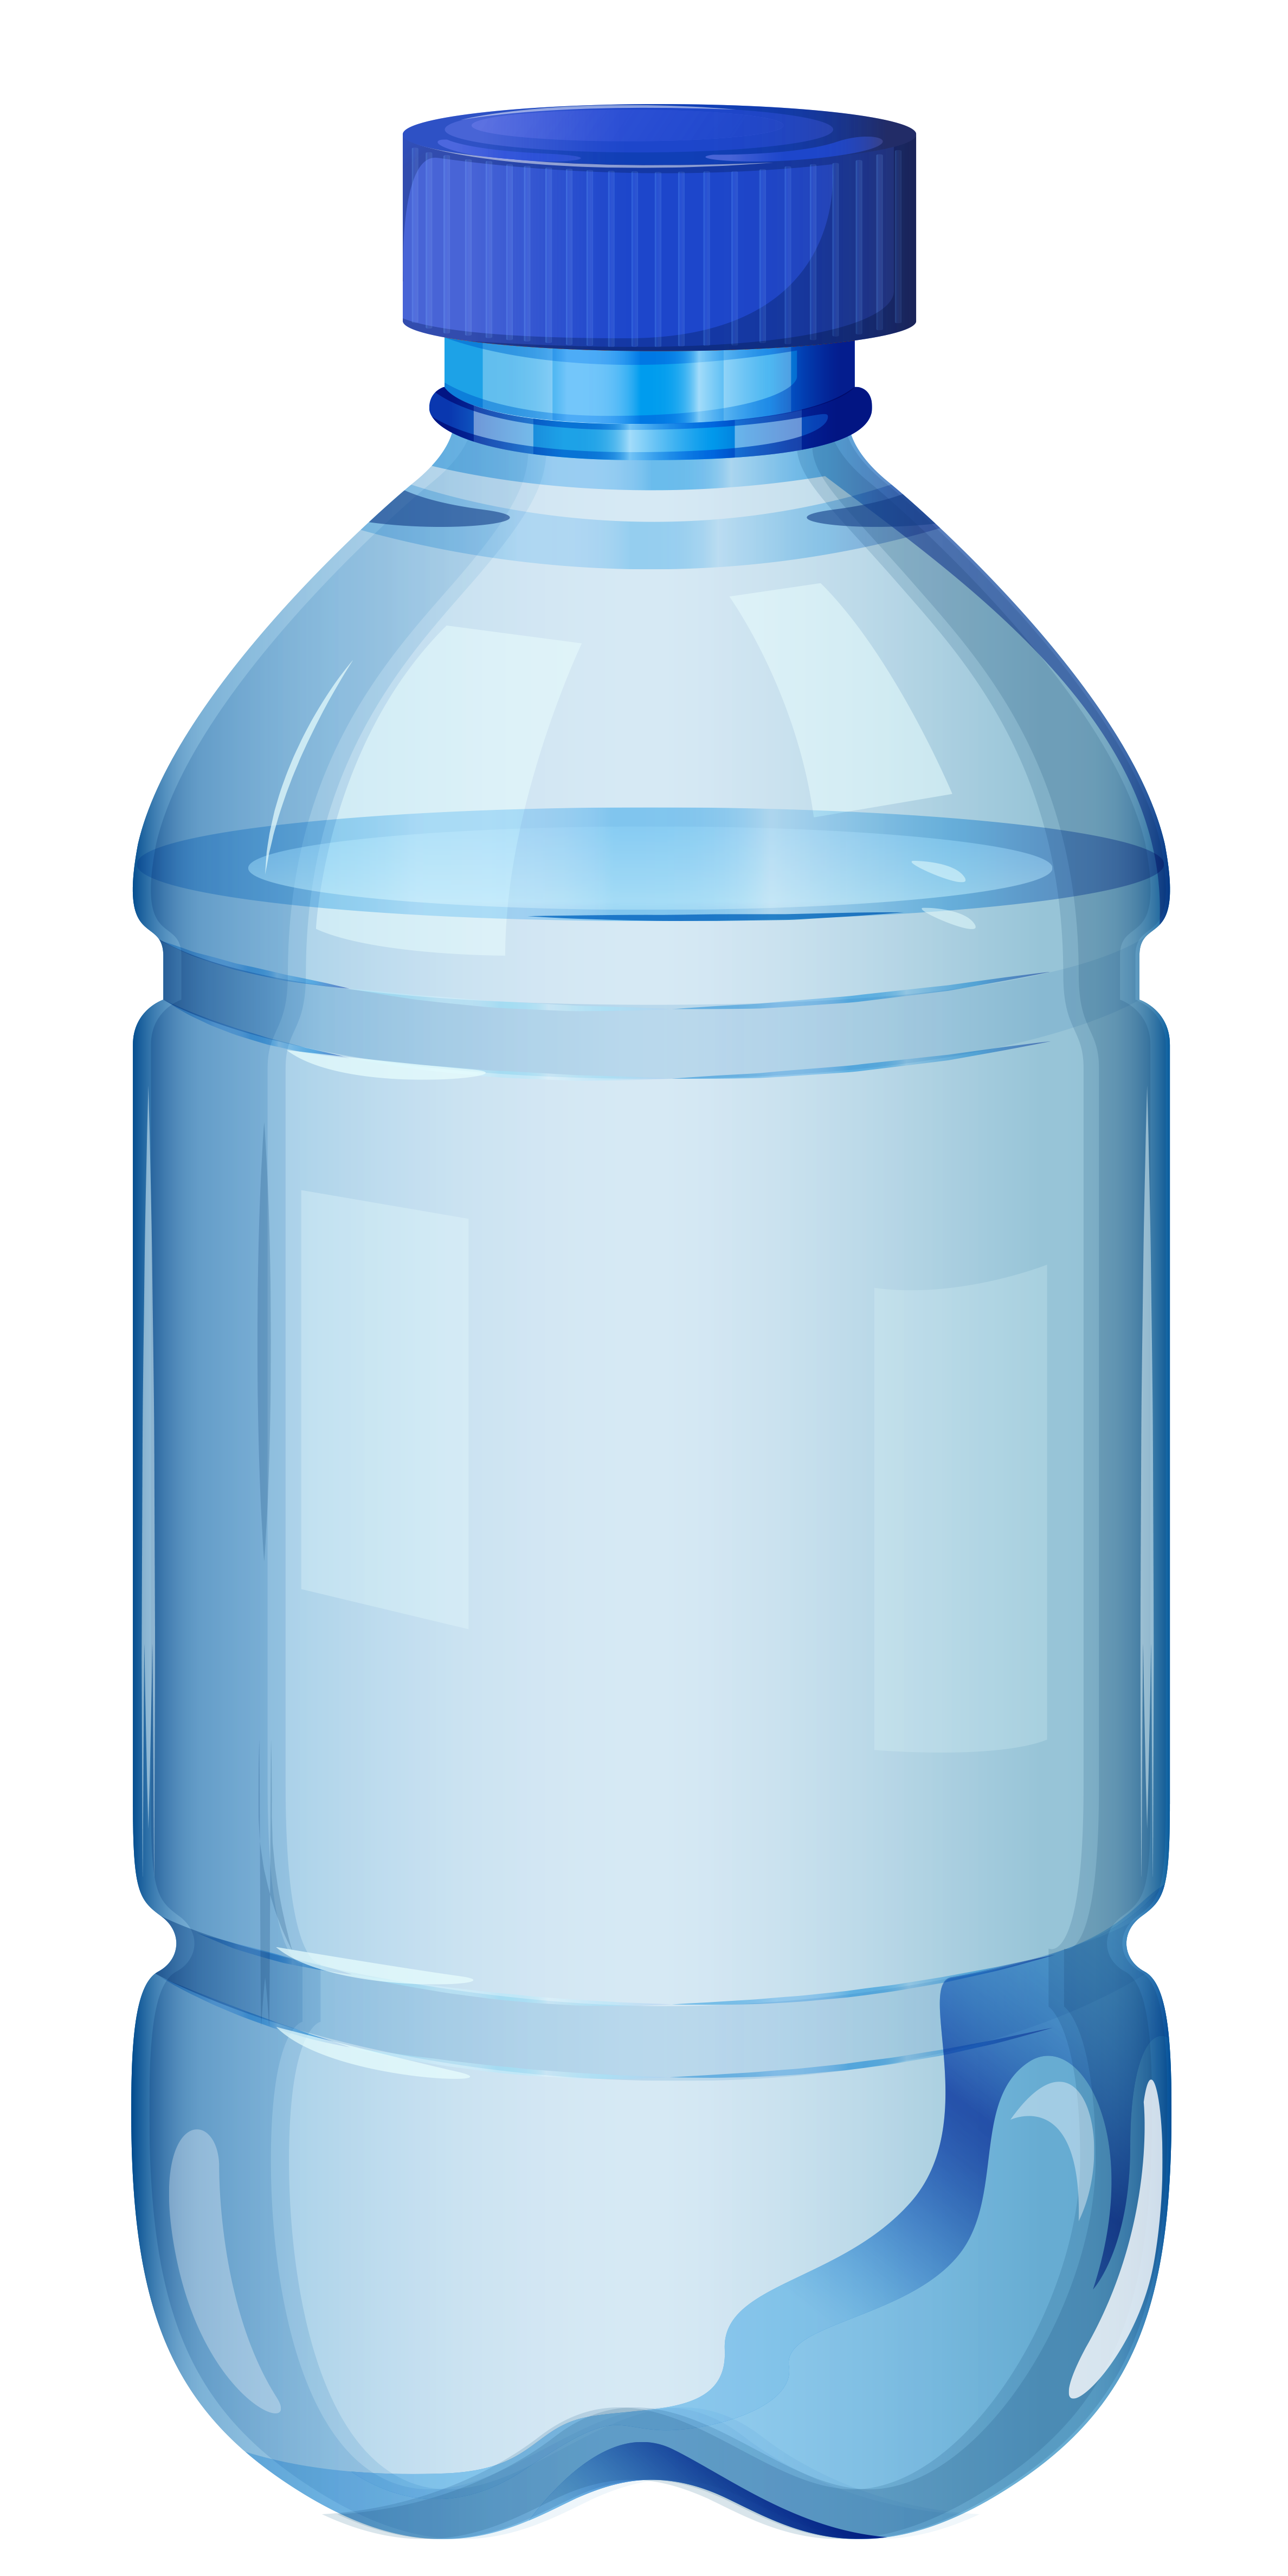 Water clipart cute vector royalty free Water bottle Bottled water Clip art - Cute Plastic Cliparts ... vector royalty free